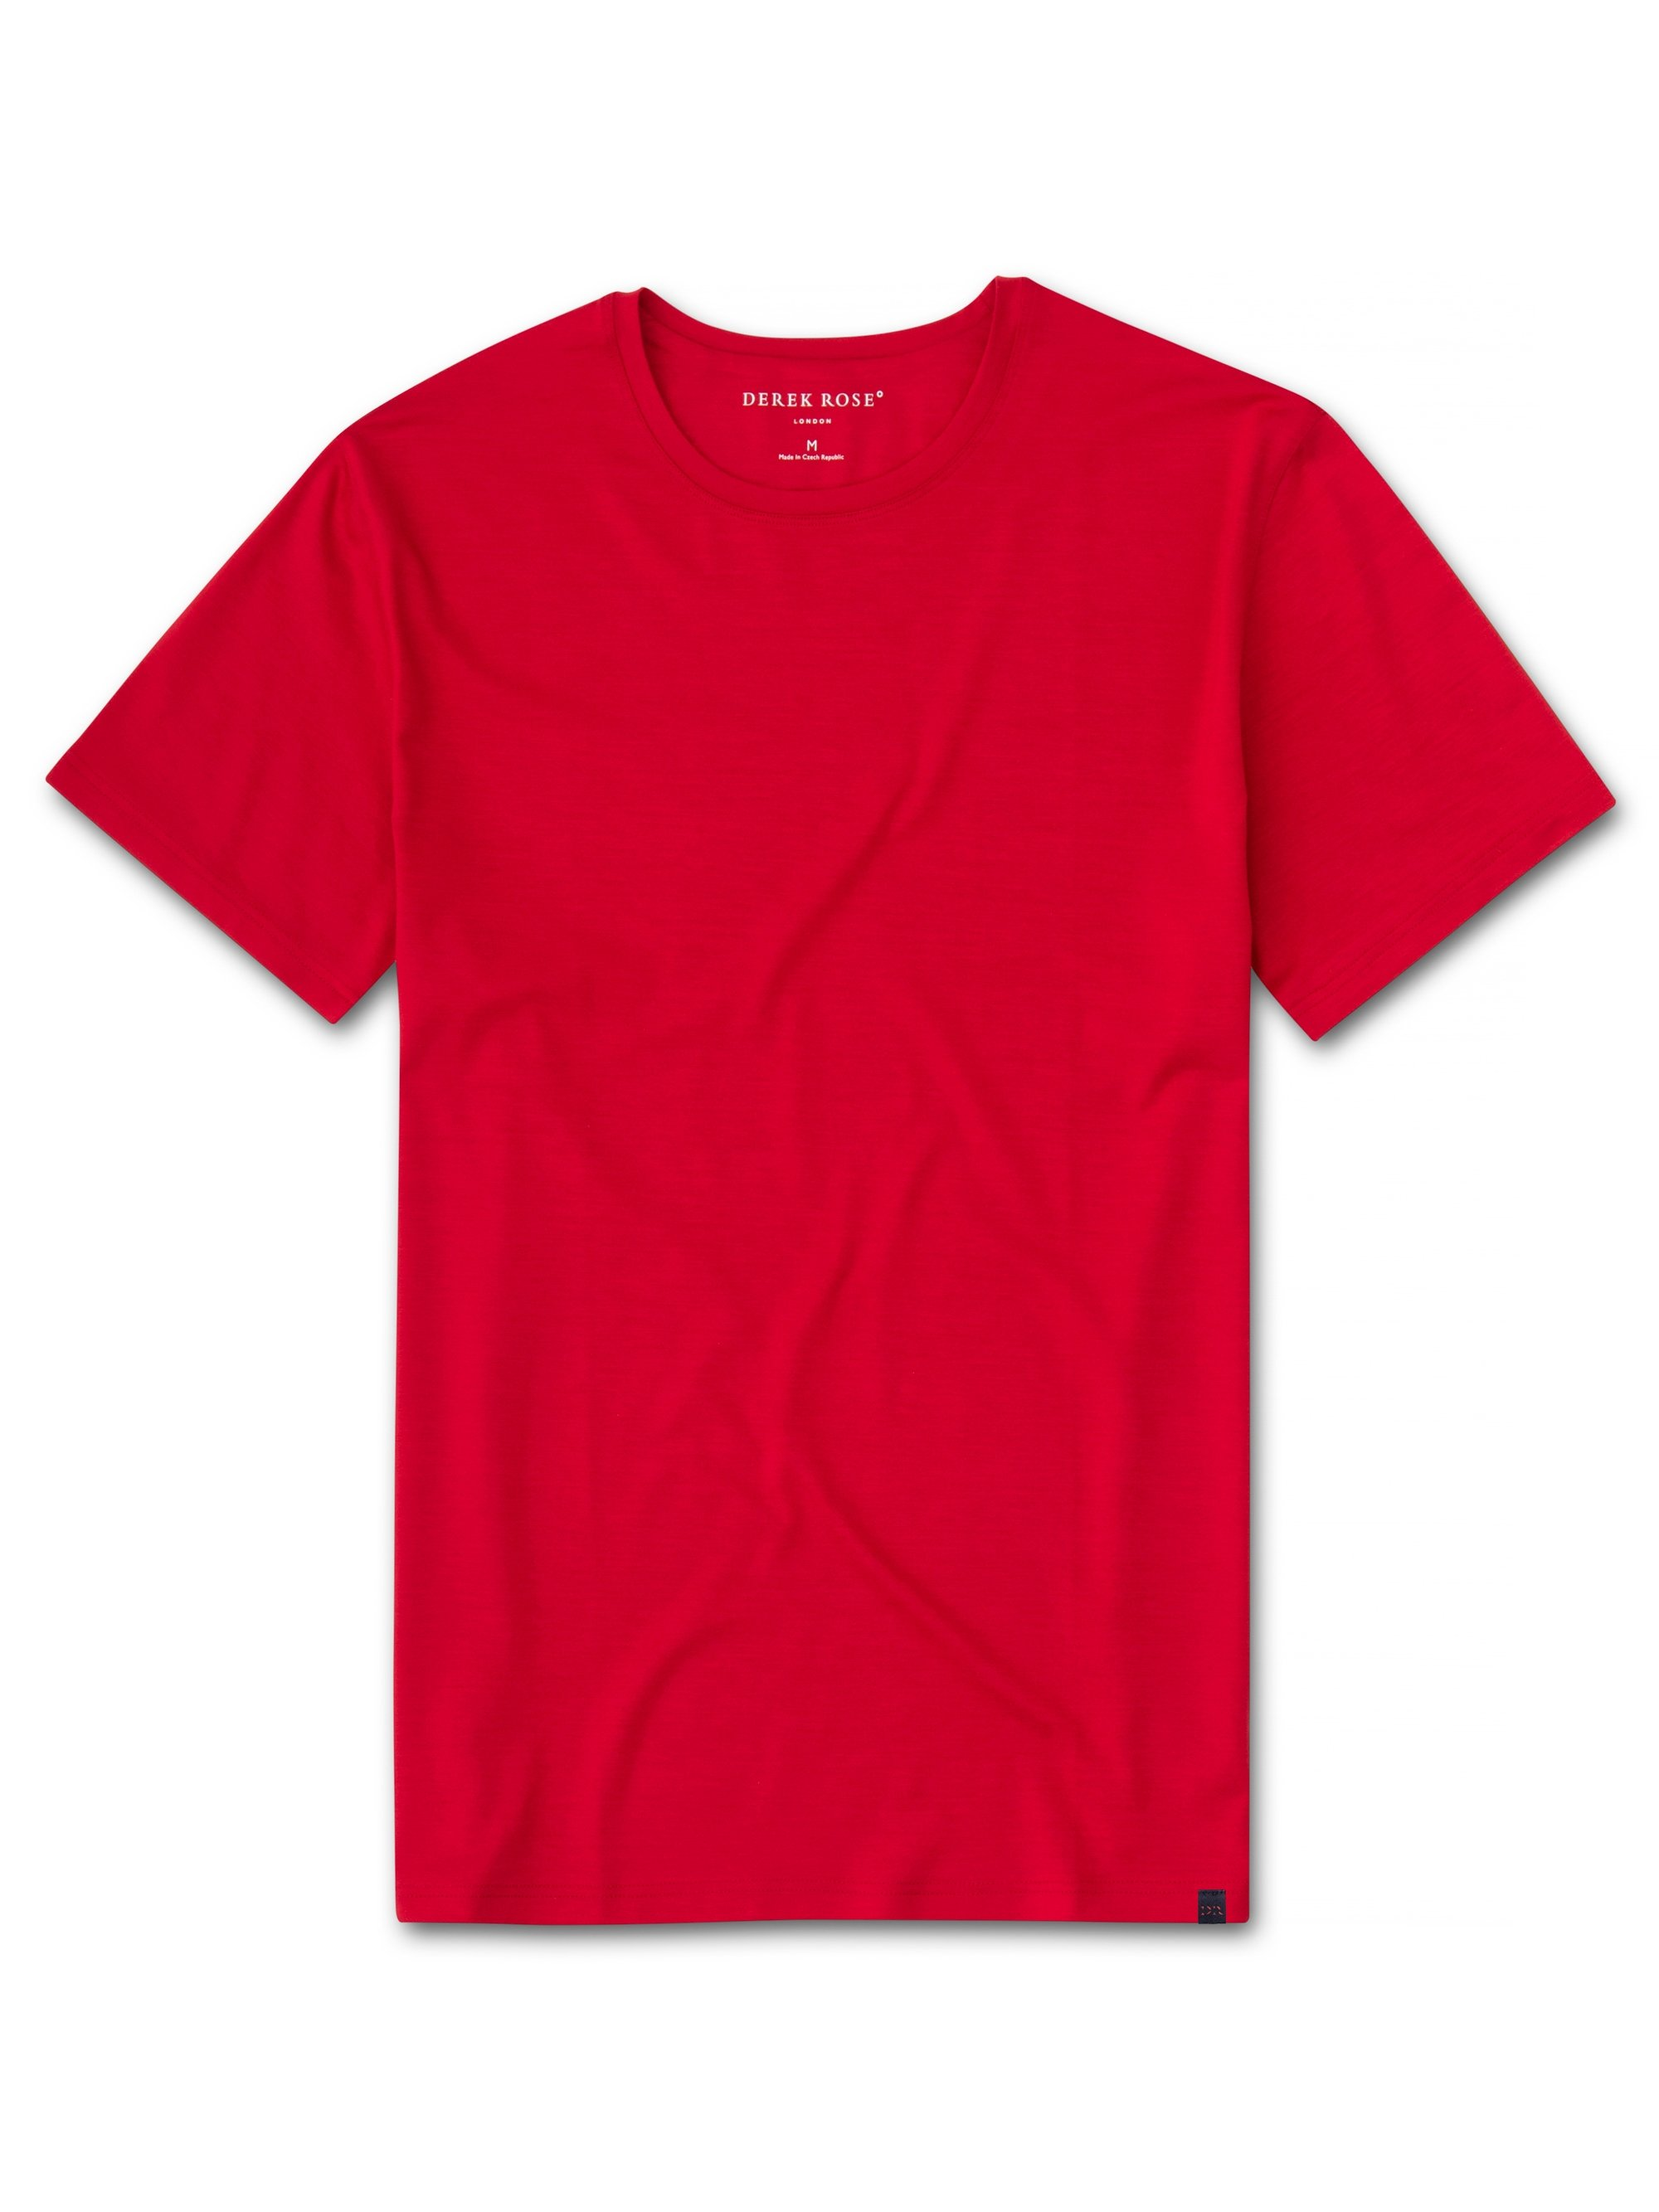 Men's Short Sleeve T-Shirt Basel 9 Micro Modal Stretch Red